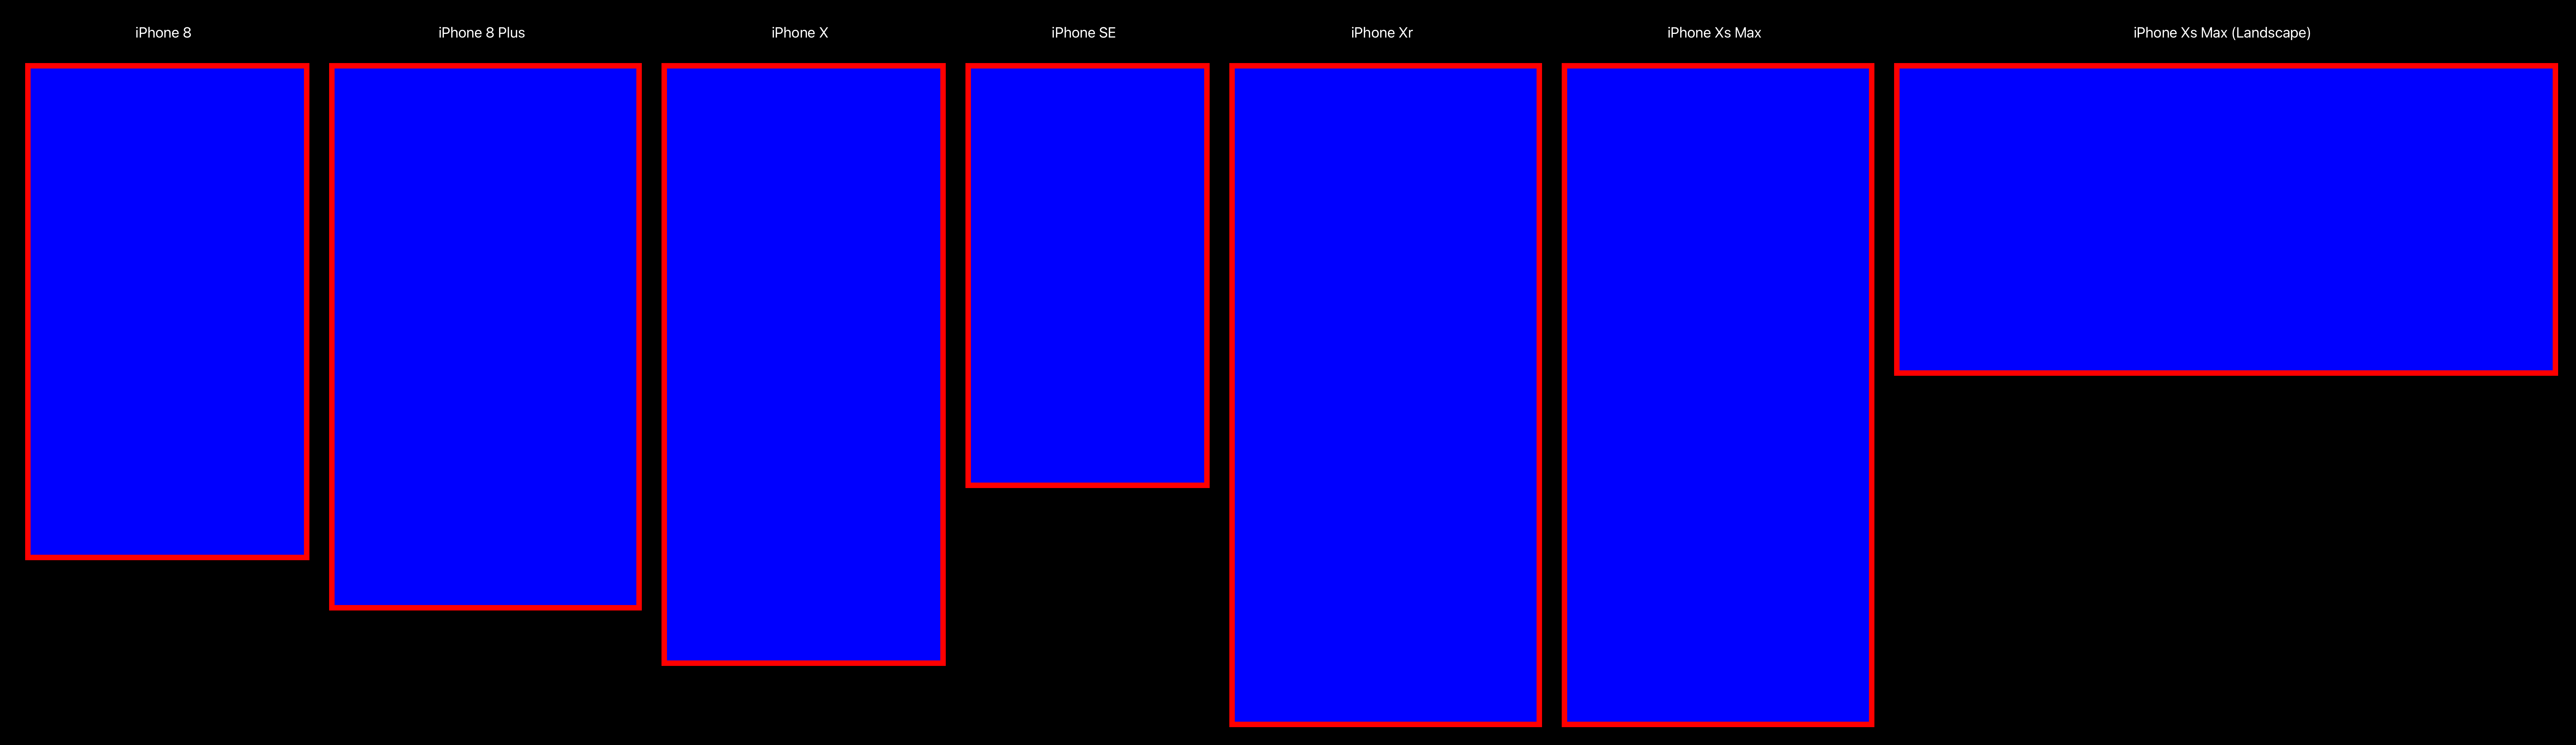 An image demonstrating an example output of the package. It shows seven views coloured in blue with red borders with titles above each of them naming each of the views.